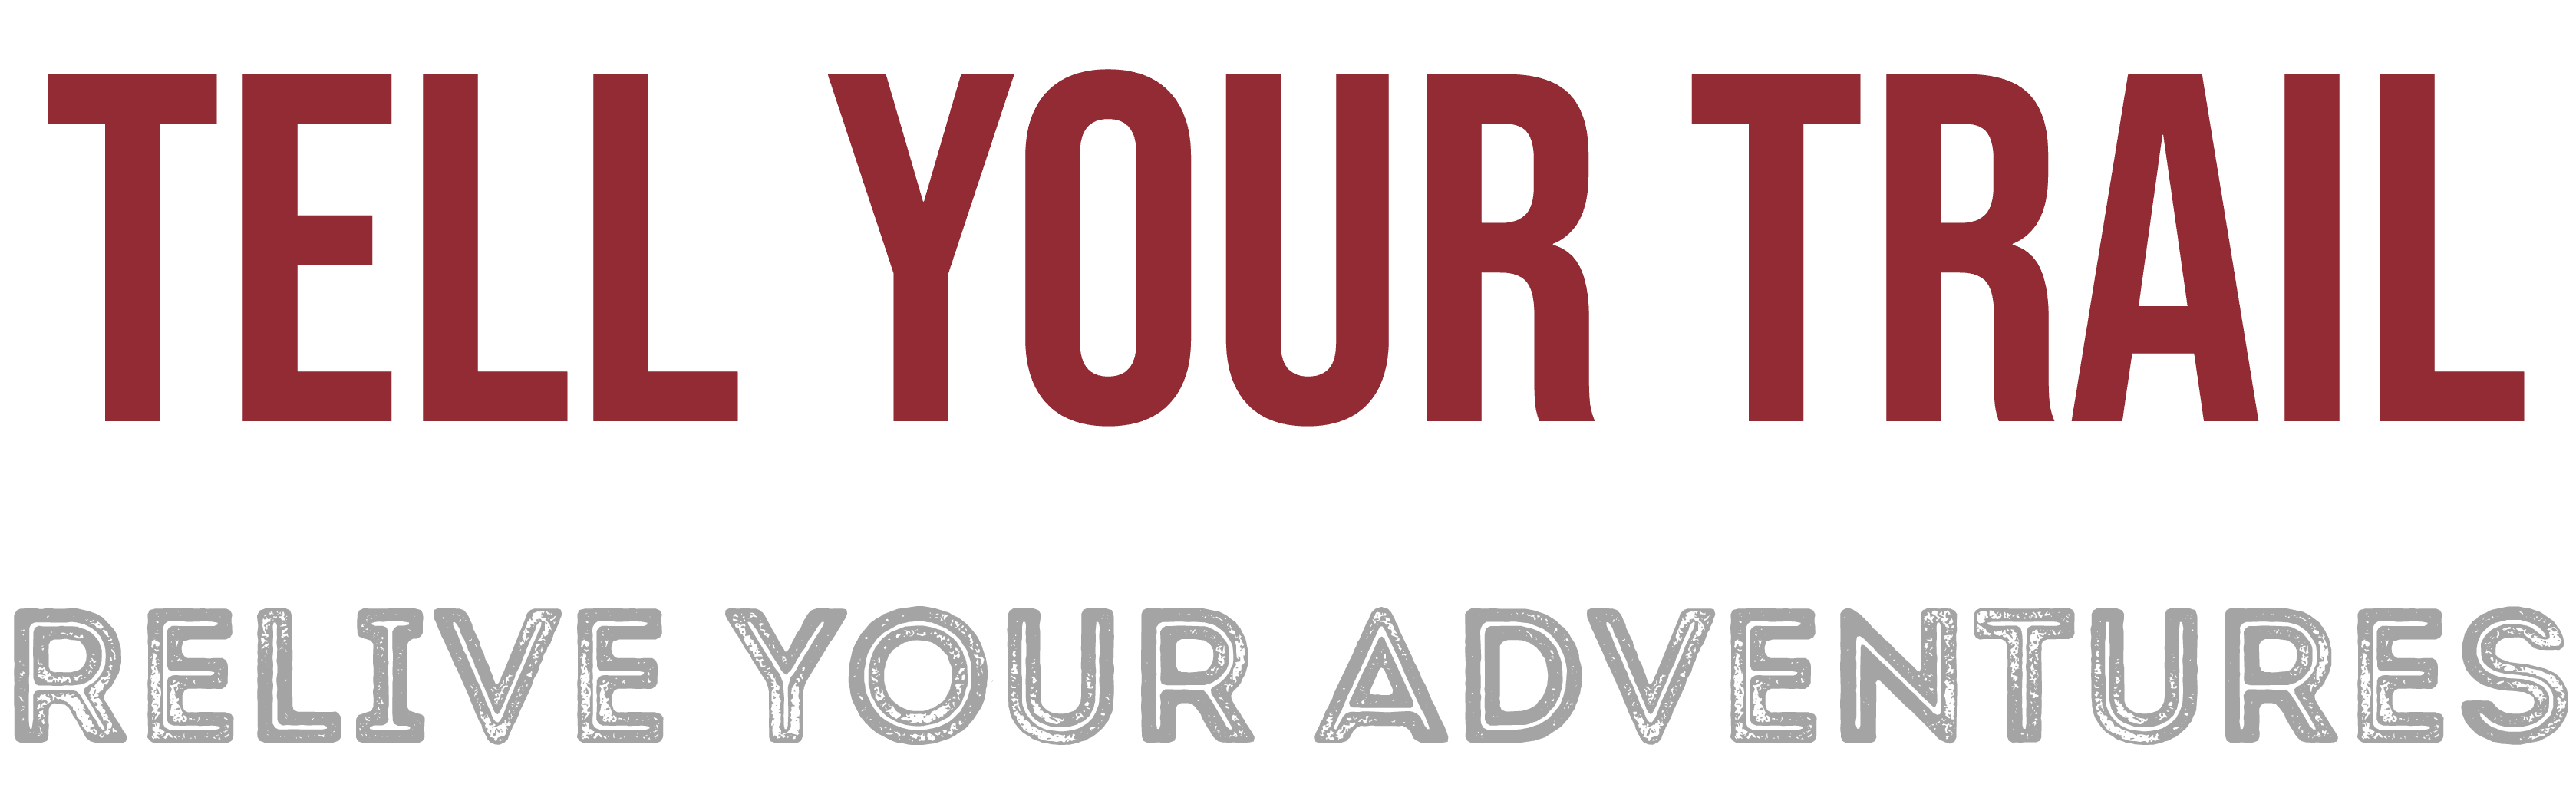 Tell your Trail Logo